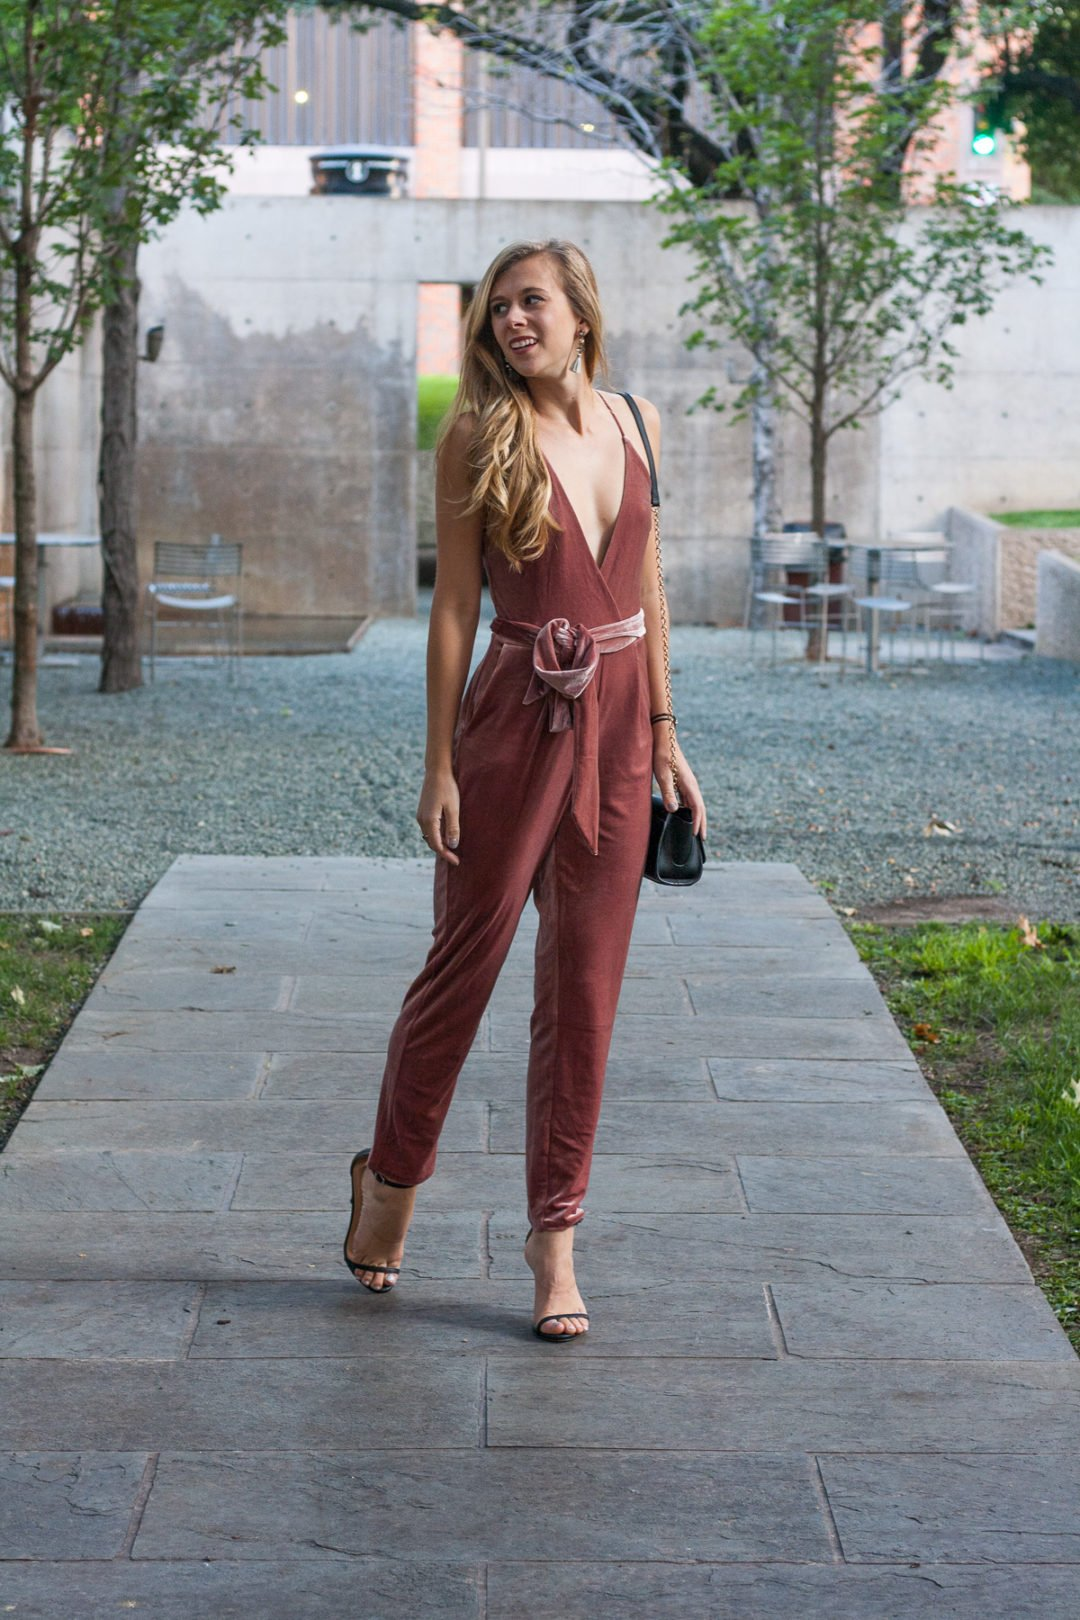 The Velvet Jumpsuit Every Girl Needs in Her Closet This Fall | Running in Heels